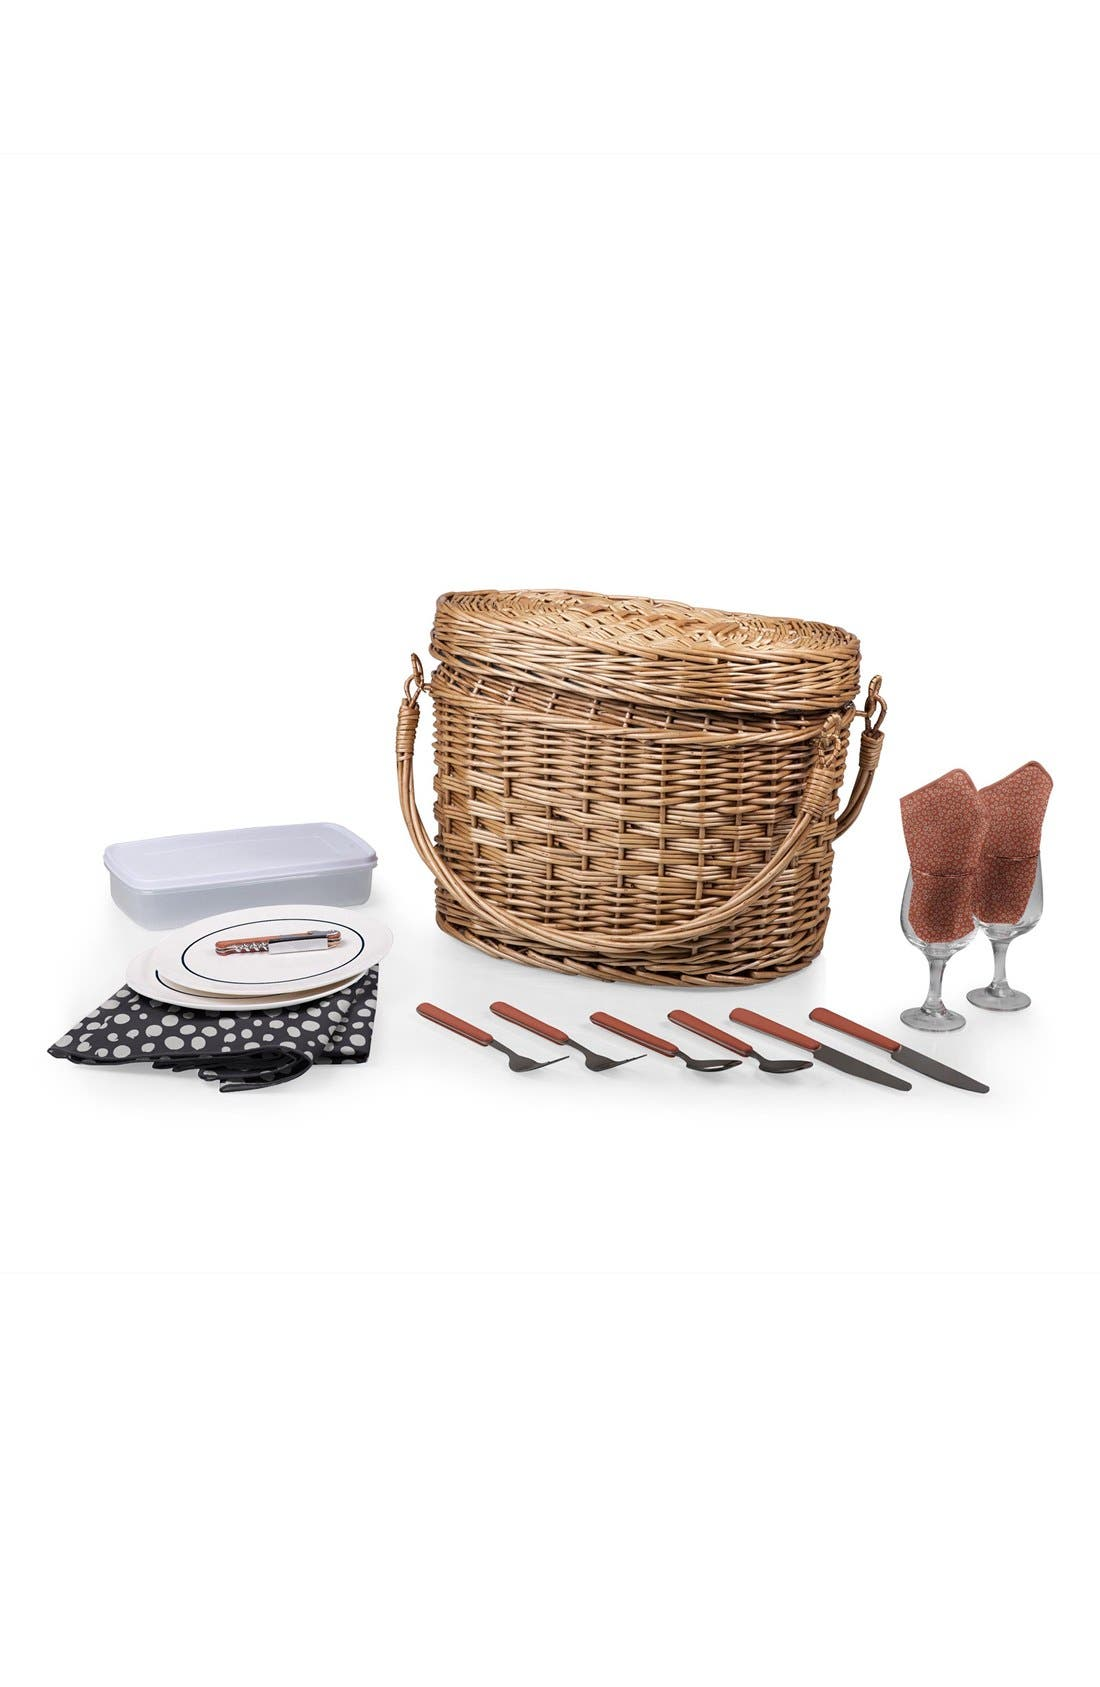 Alternate Image 3  - Picnic Time 'Romance' Picnic Basket